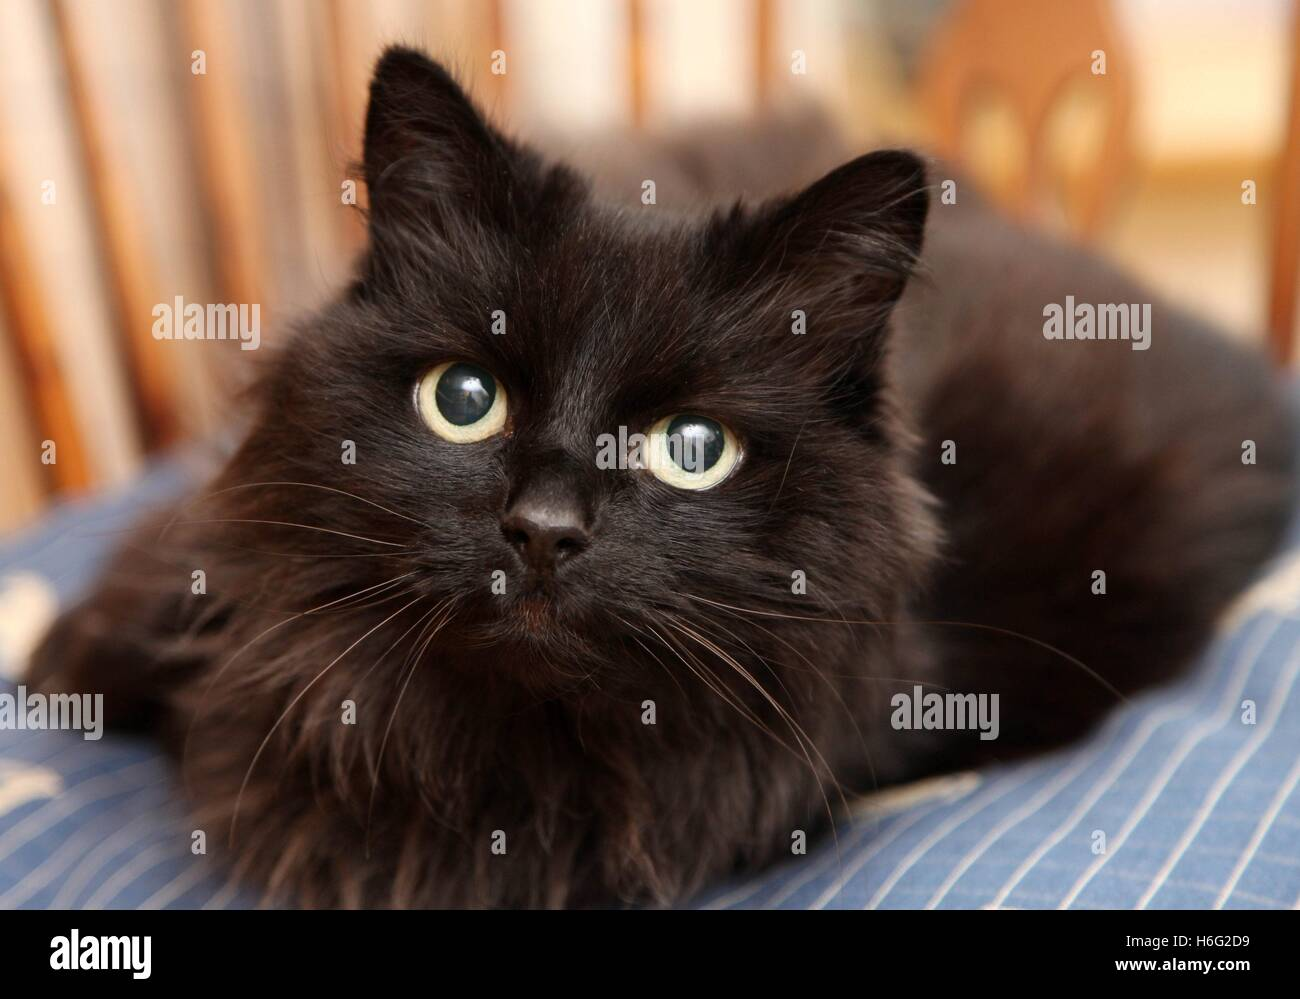 Tight head shot of a long haired black cat on blue cushion, looking straight to camera, yellow eyes - Stock Image